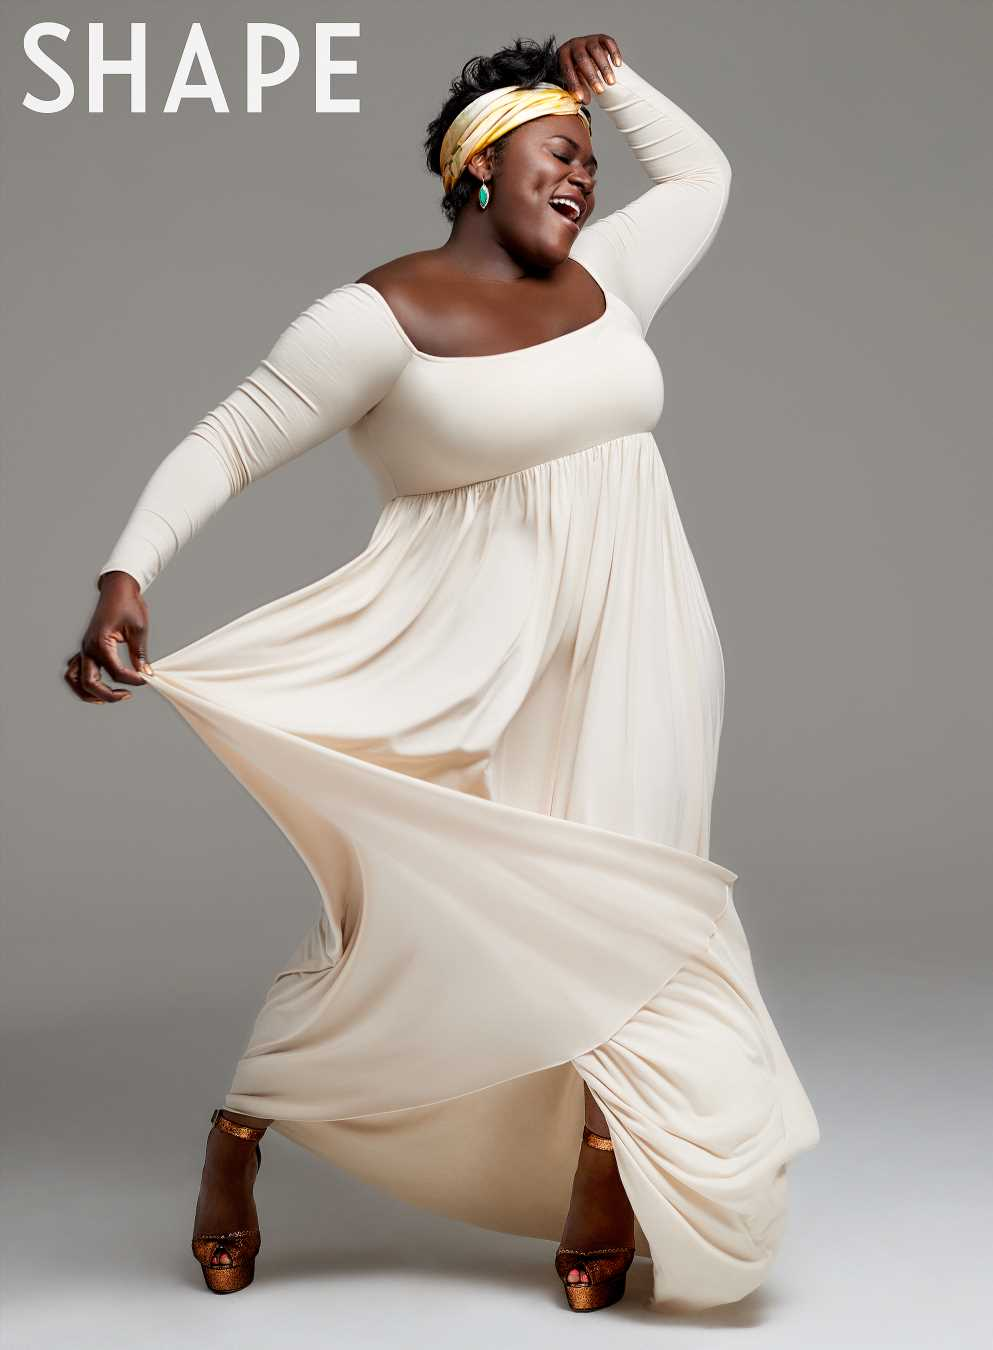 How OITNB's Danielle Brooks is Advocating for Body Positivity: 'I Love My Body'